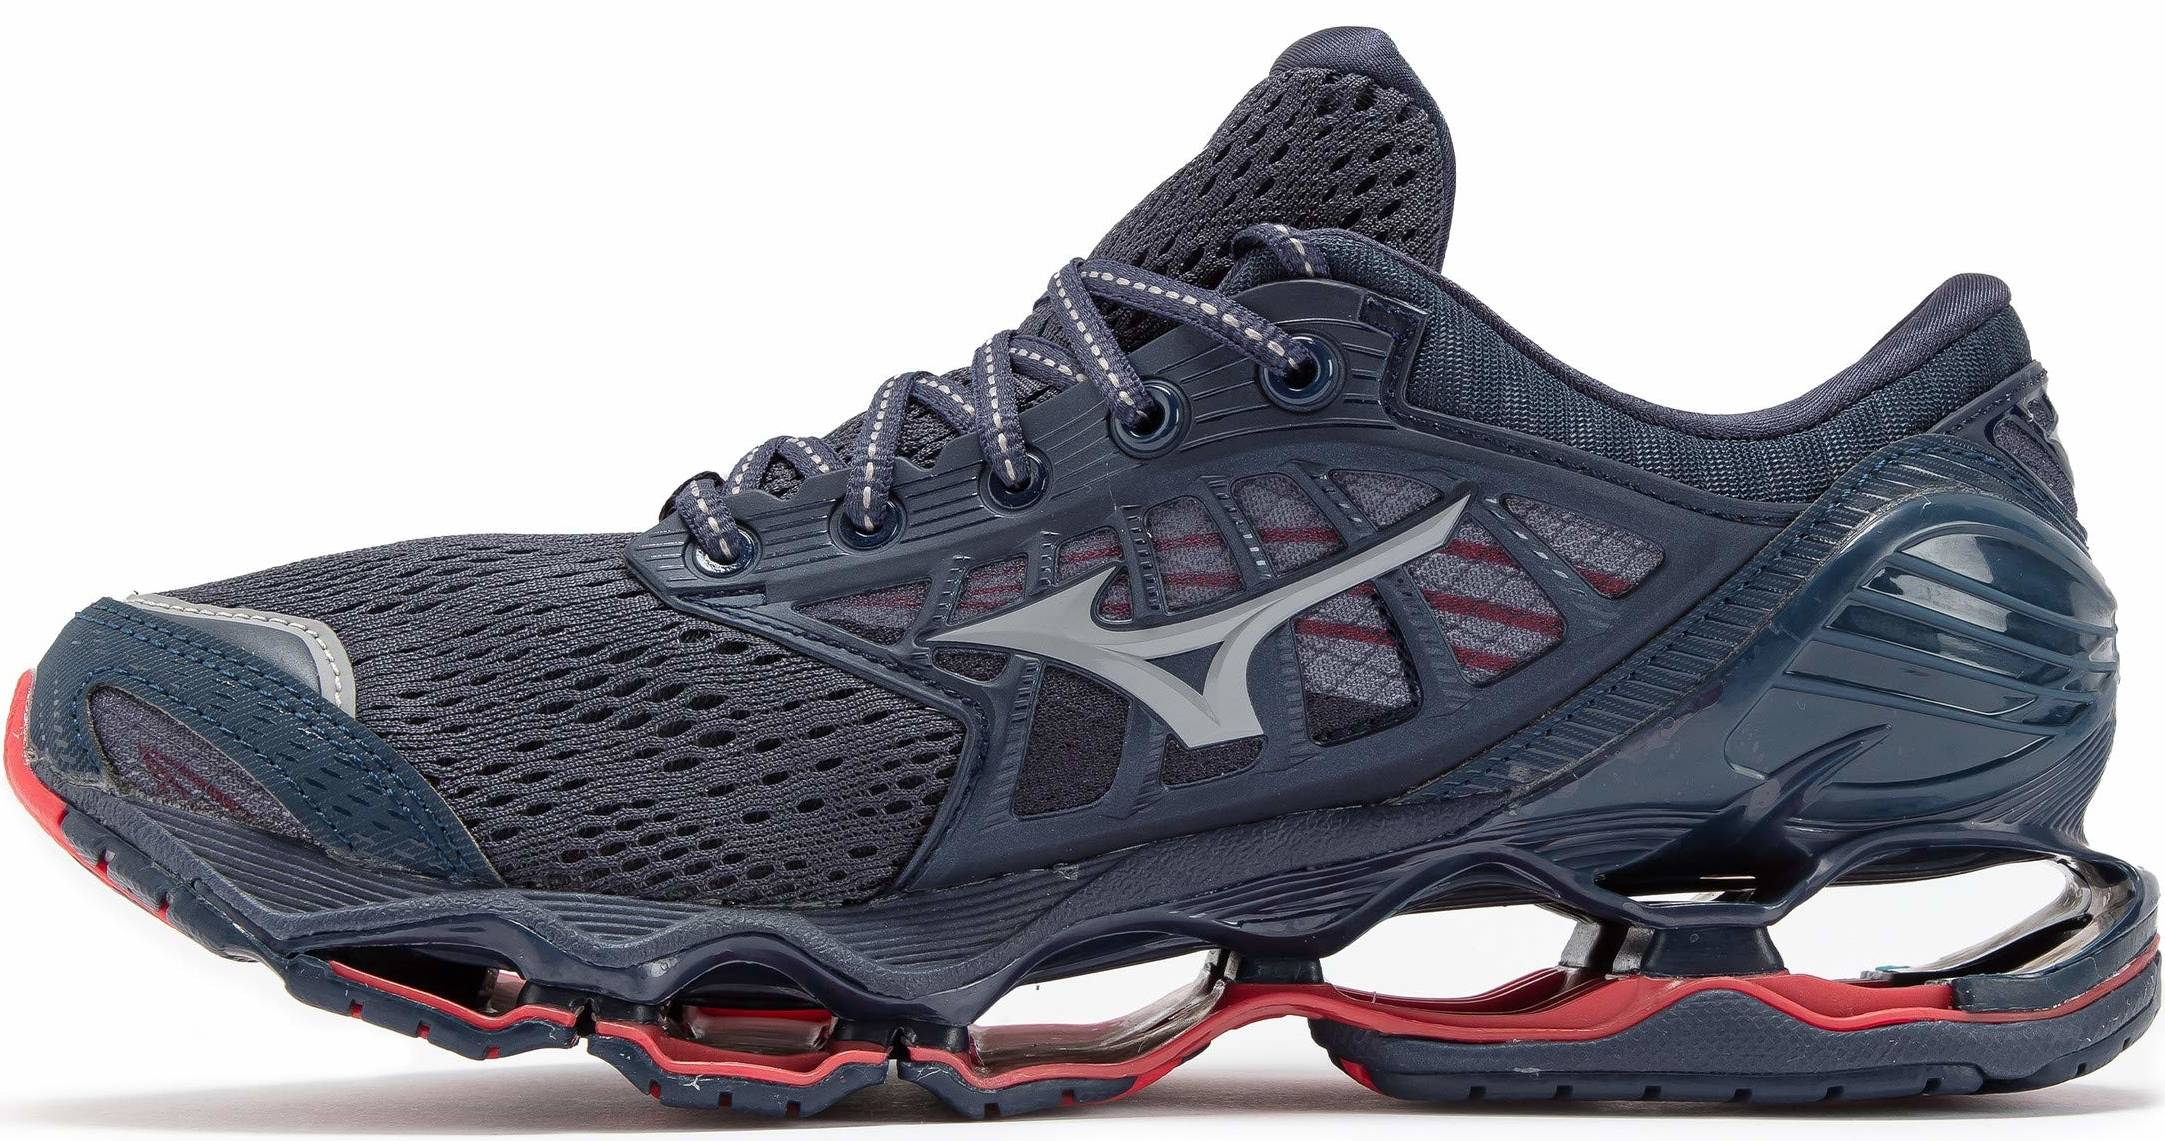 mens mizuno running shoes size 9.5 eu weight on woman